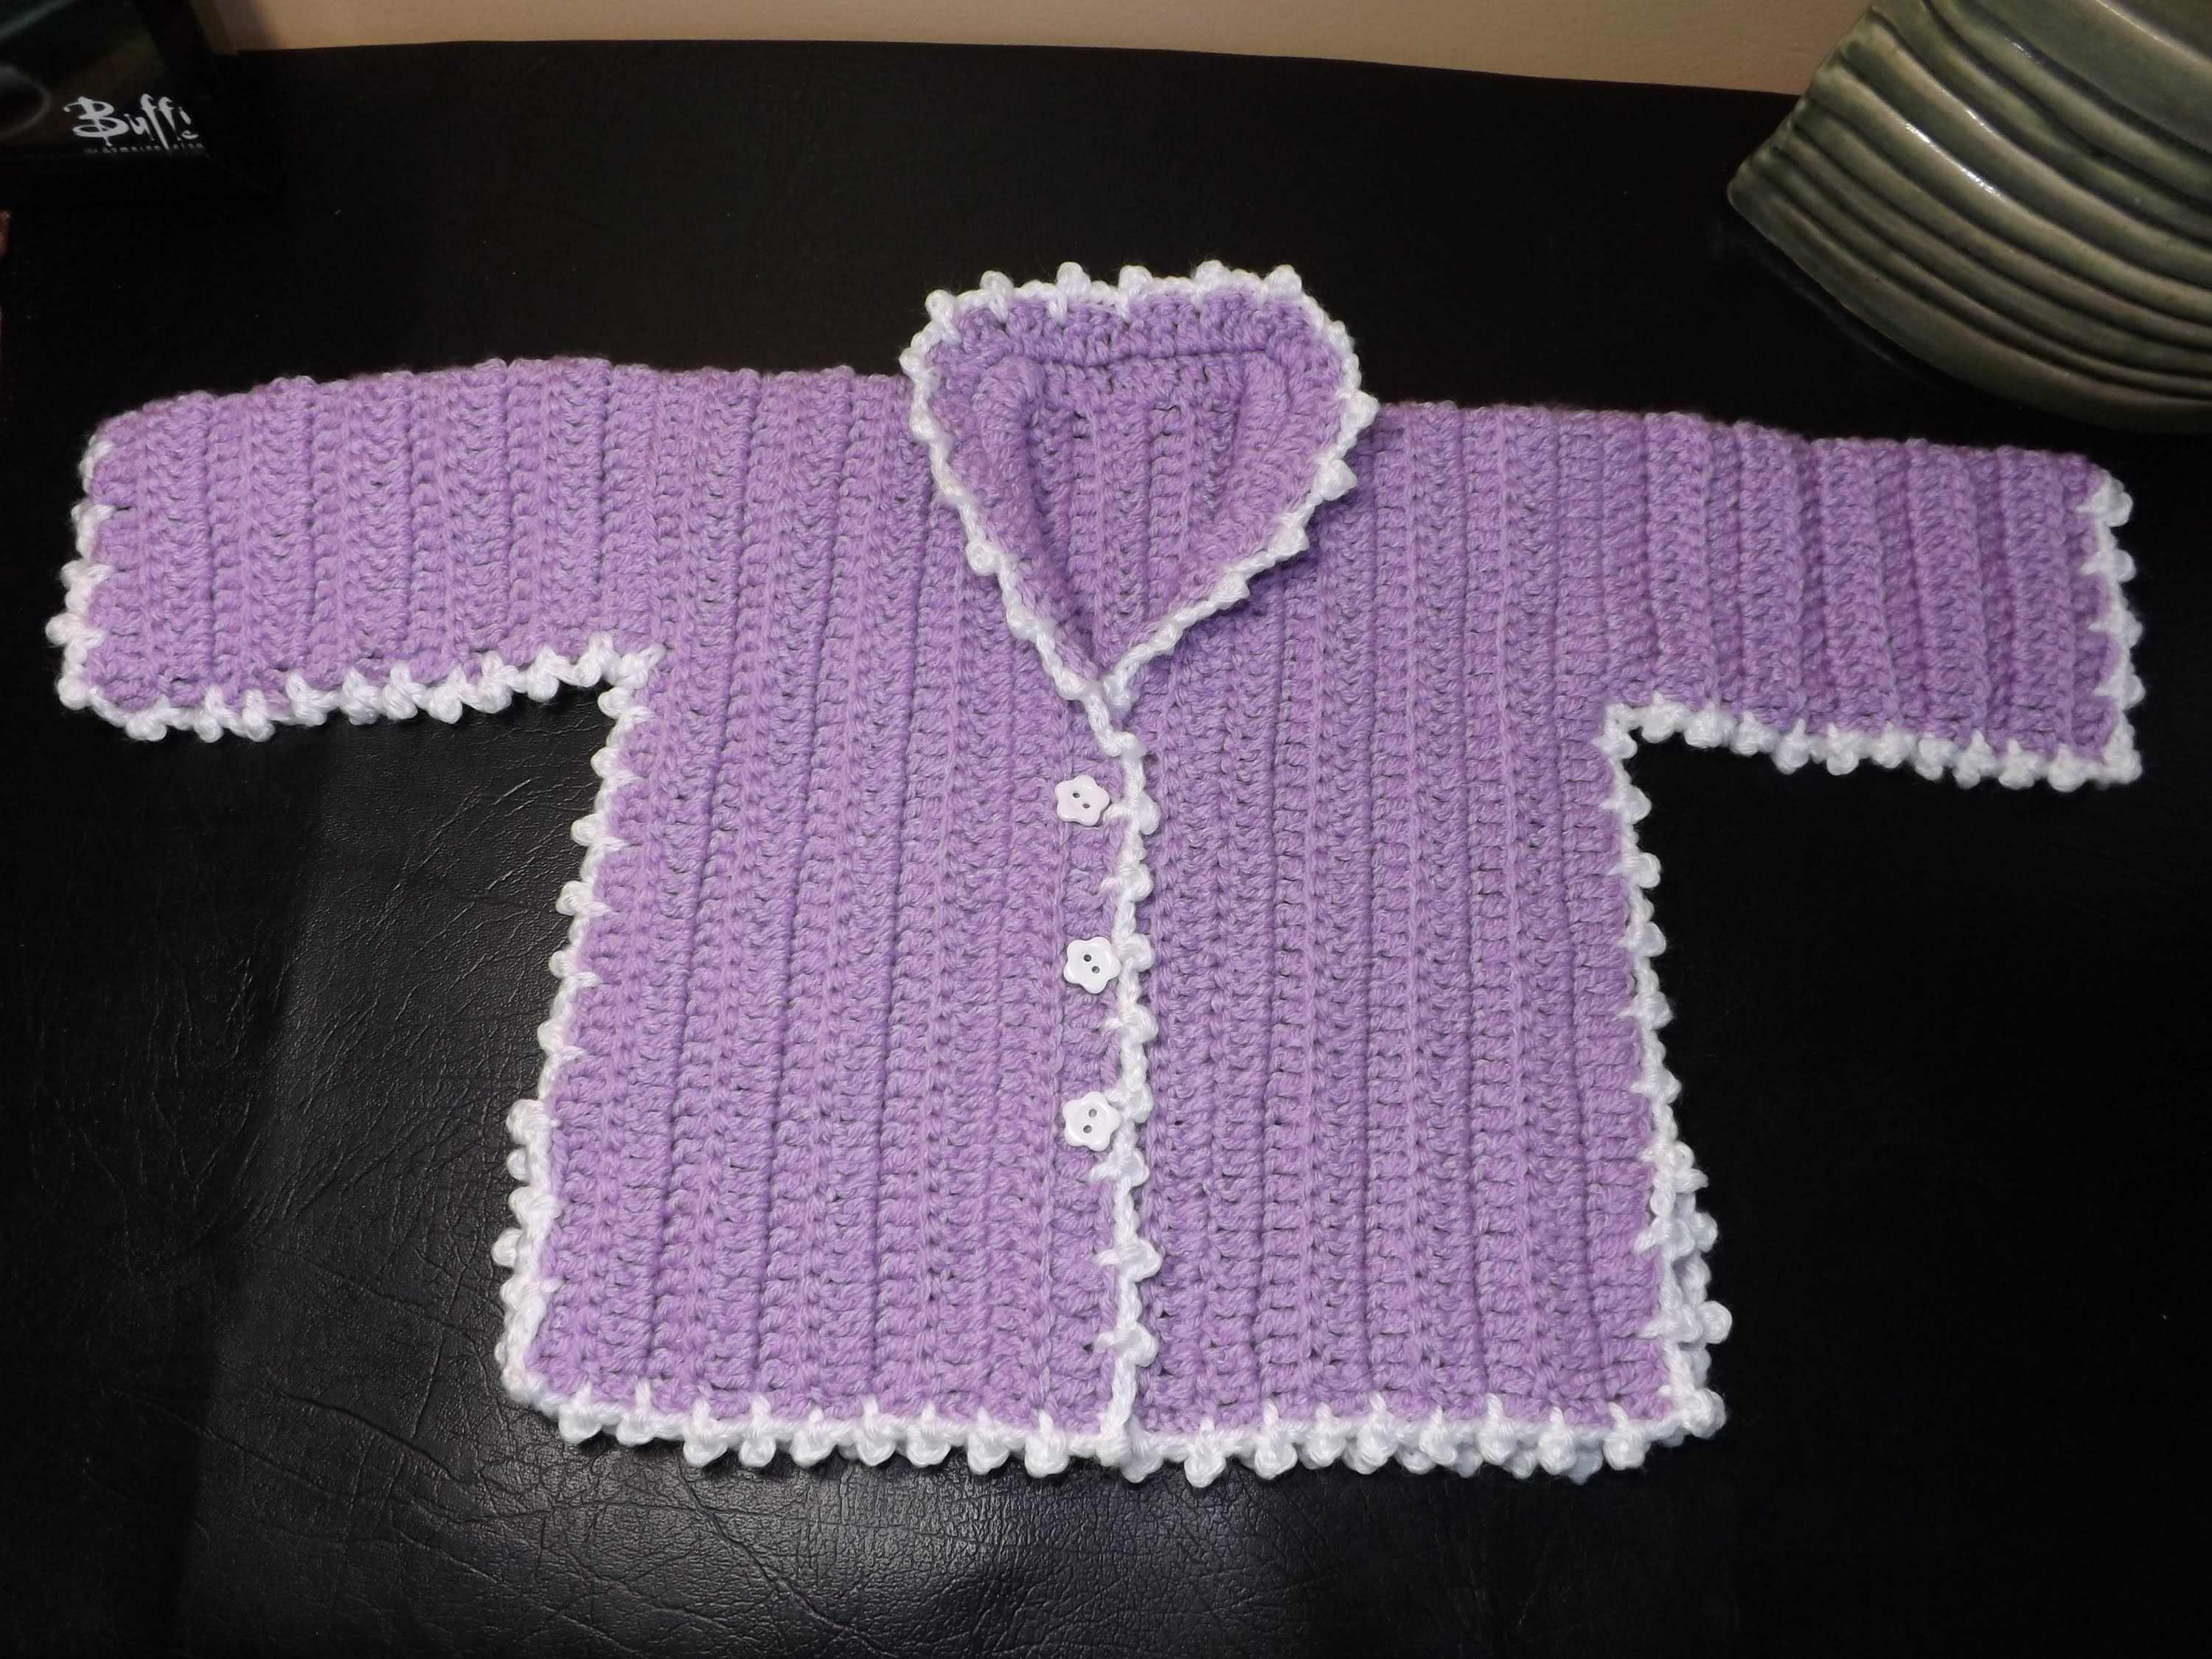 Crochet Baby Sweater Luxury How to Make Crochet Sweater for Baby Of Charming 44 Images Crochet Baby Sweater